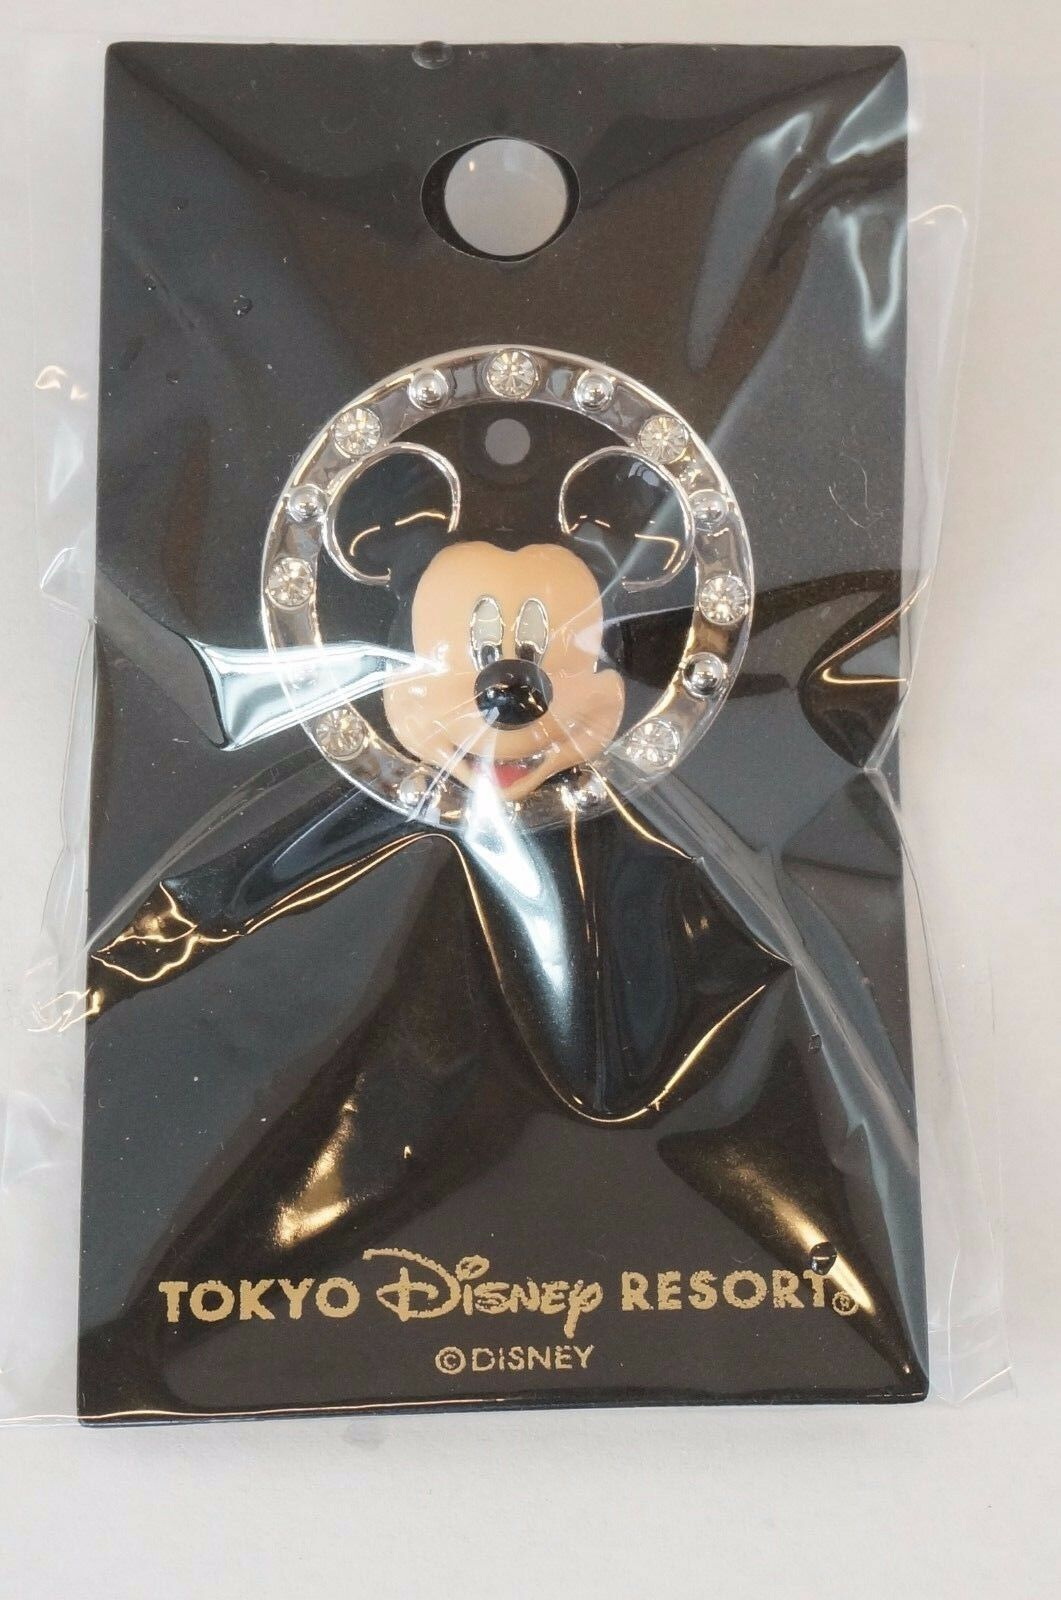 Tokyo Disney Resort Pin Brooch Mickey Mouse Tdr Japan 899 Picclick Jacket 1 Of 4only Available